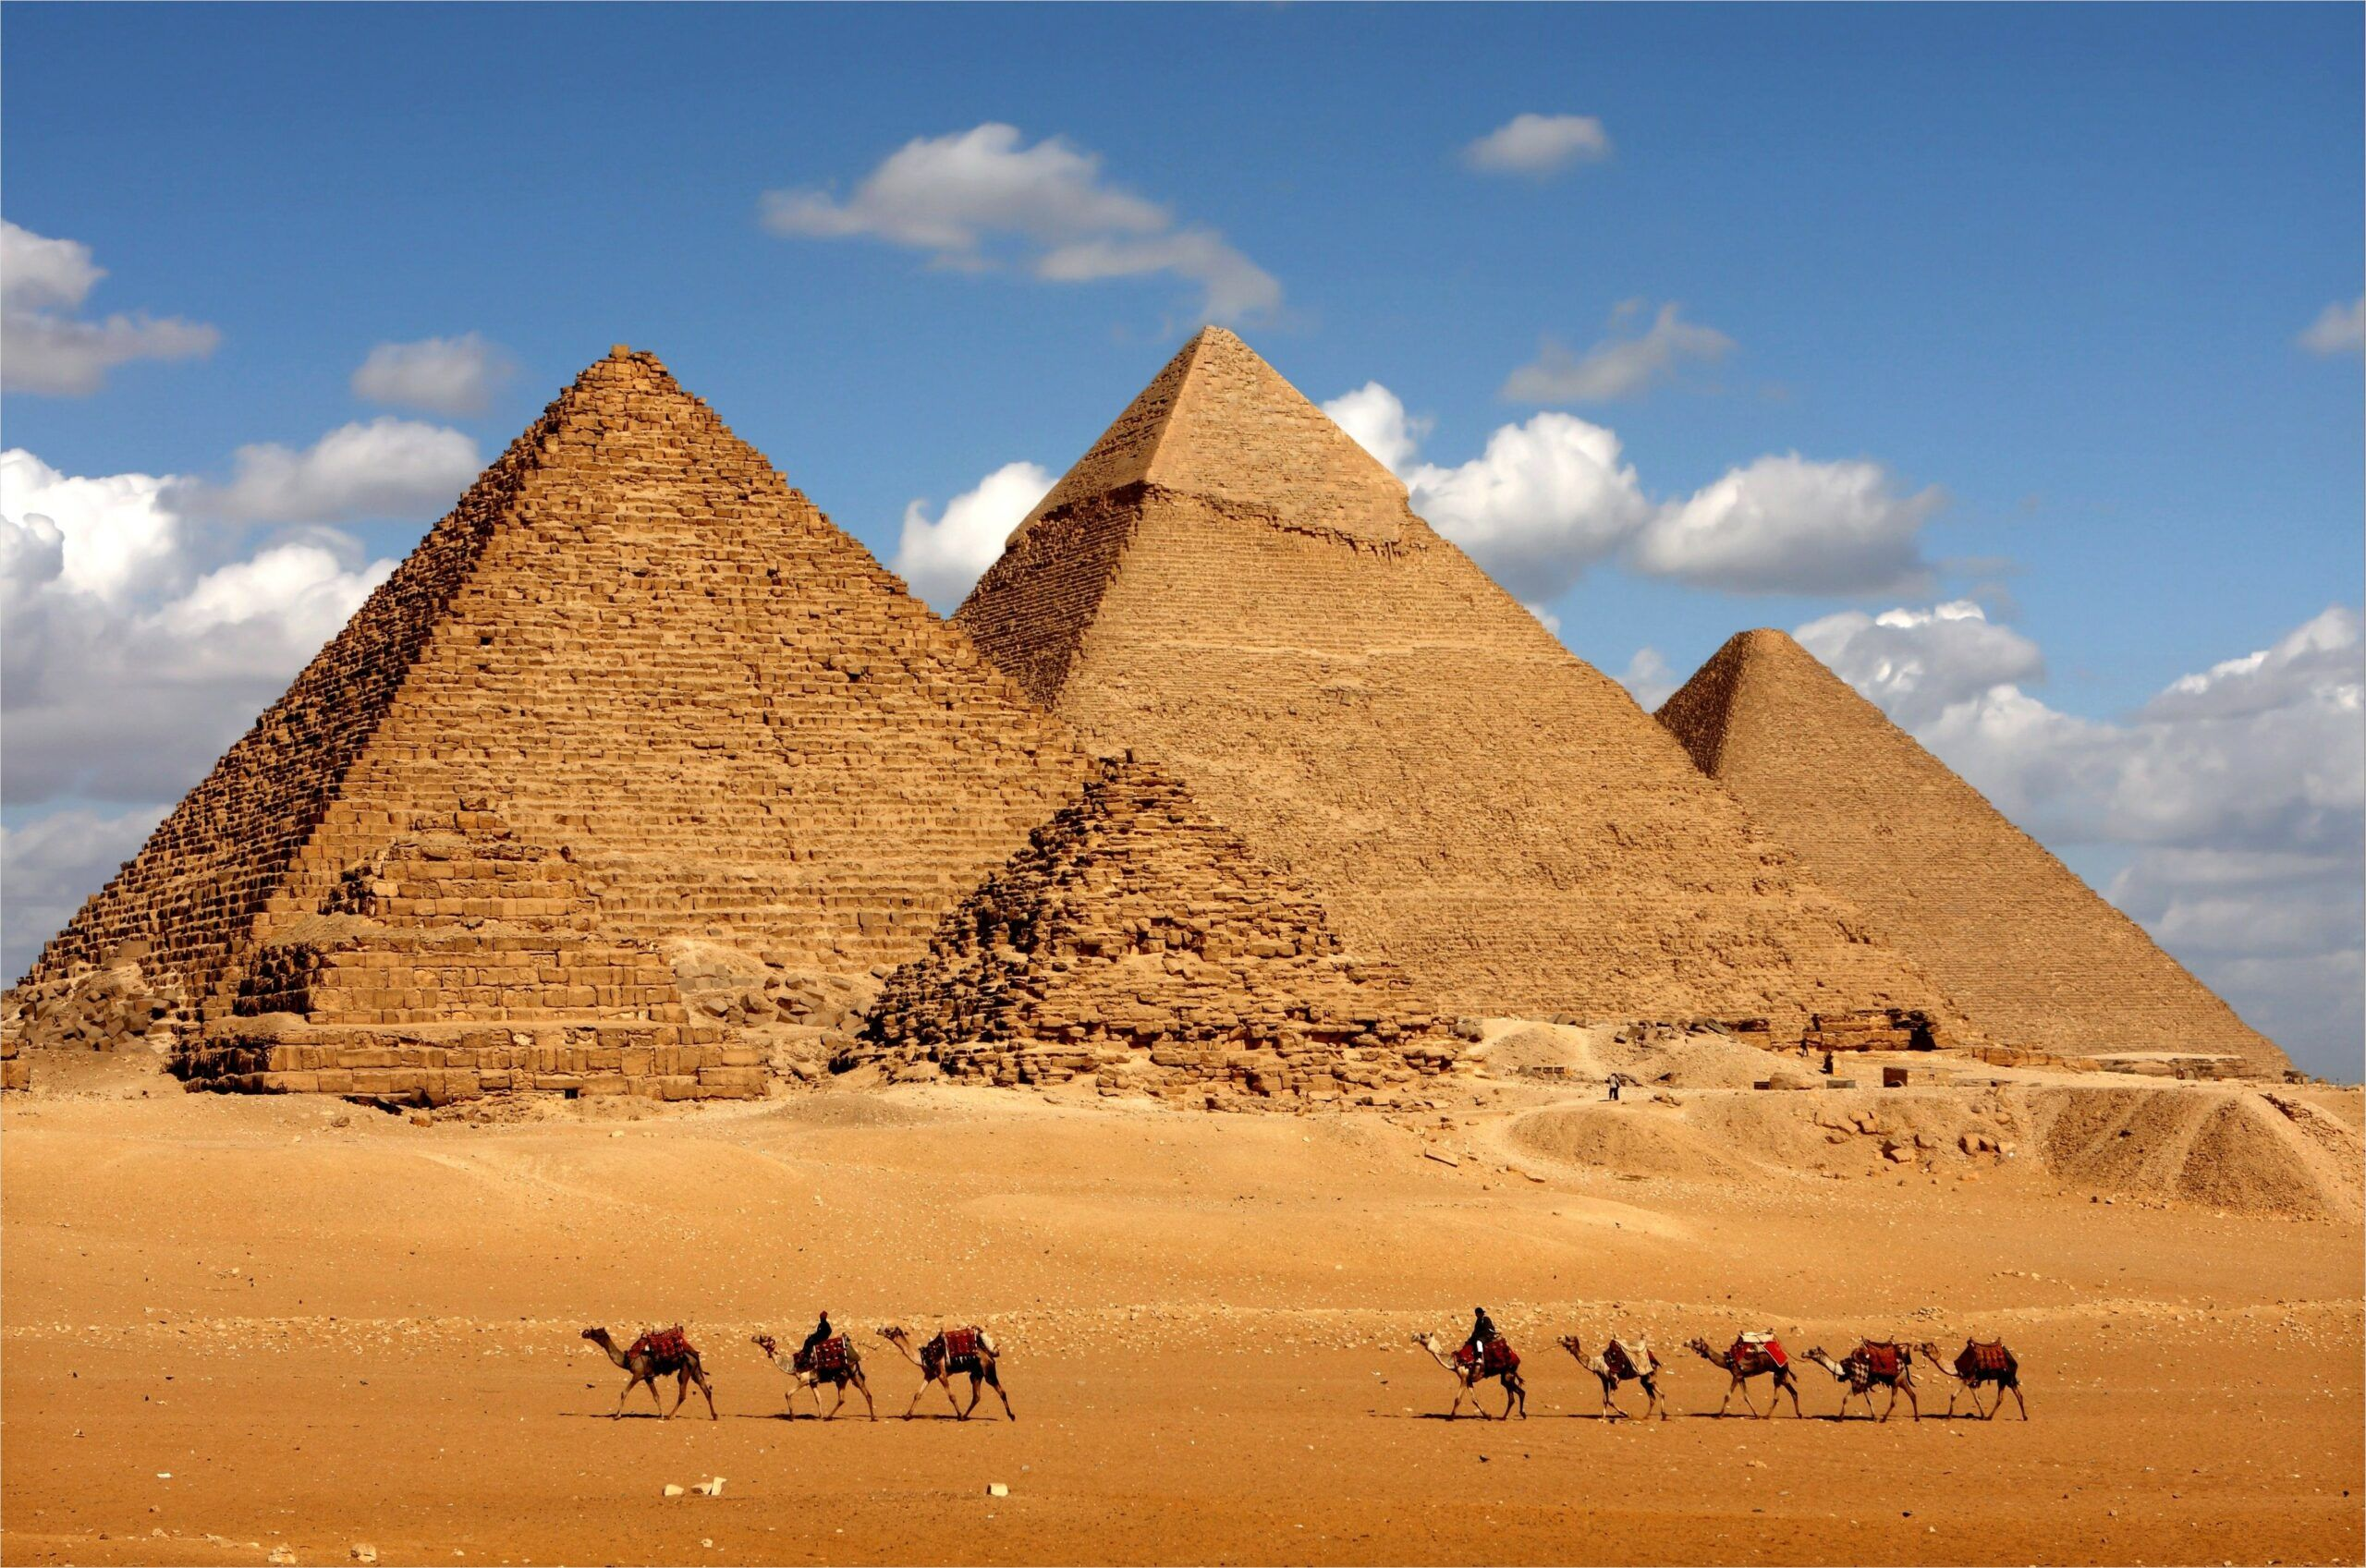 4k Egypt Pyramid And Moon Wallpaper In 2020 Great Pyramid Of Giza Egypt Egypt Travel